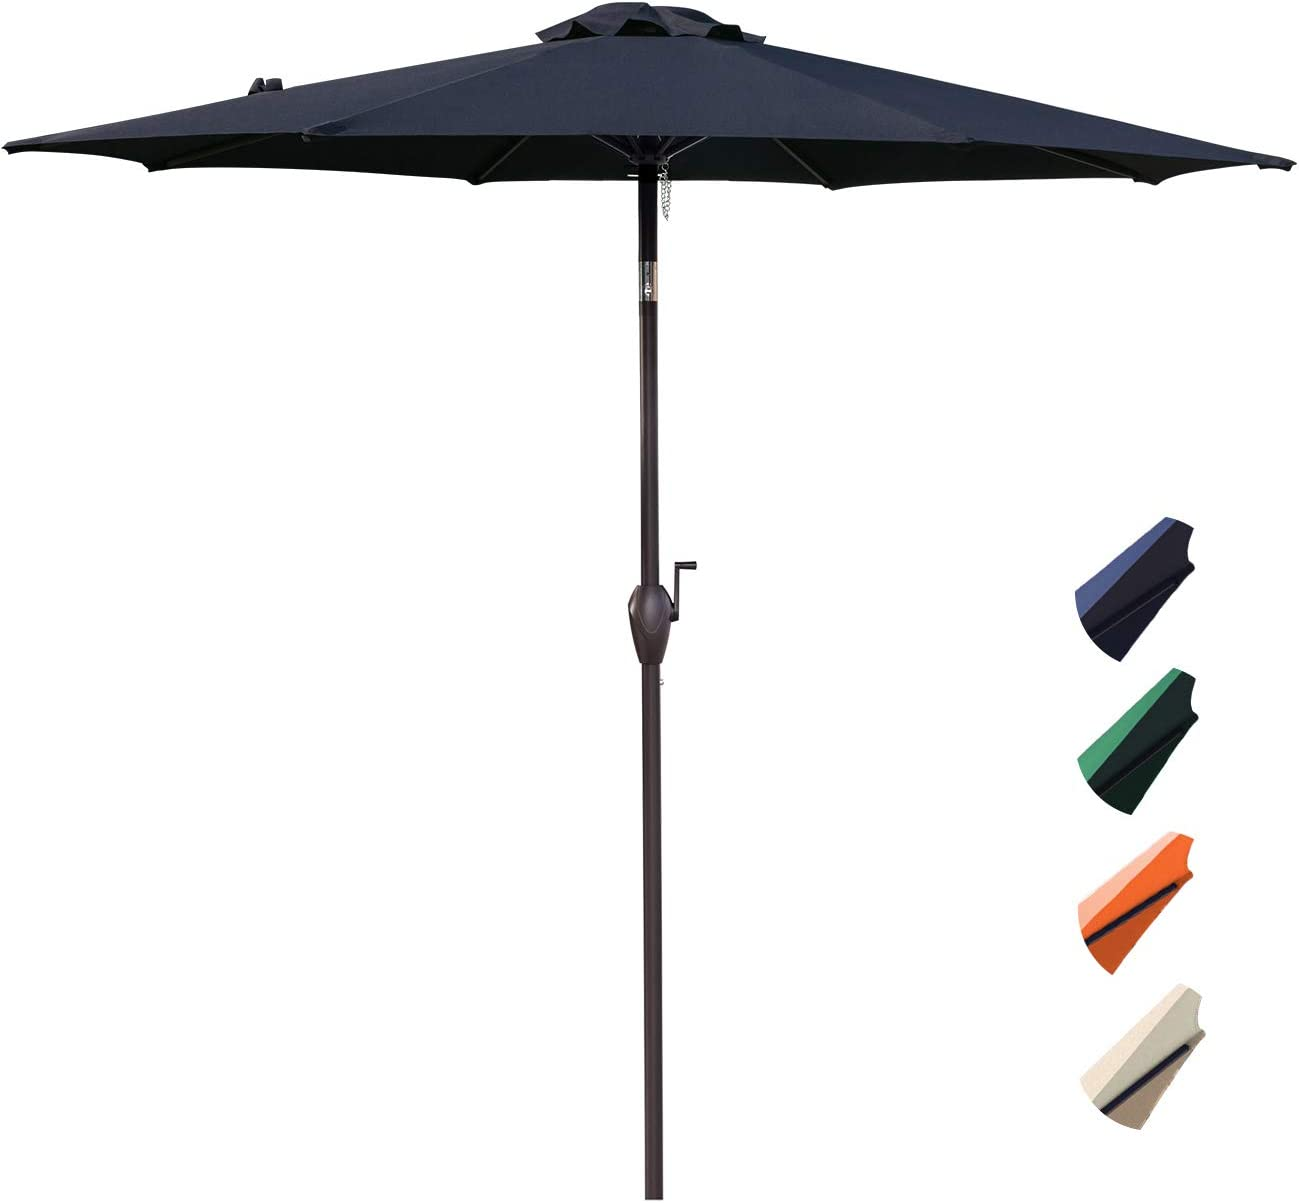 RUBEDER 9 Patio Umbrella Outdoor Market Table Umbrella with 8 Sturdy Ribs,Wing Vent,Push Button Tilt Crank 9 Ft, Navy 2